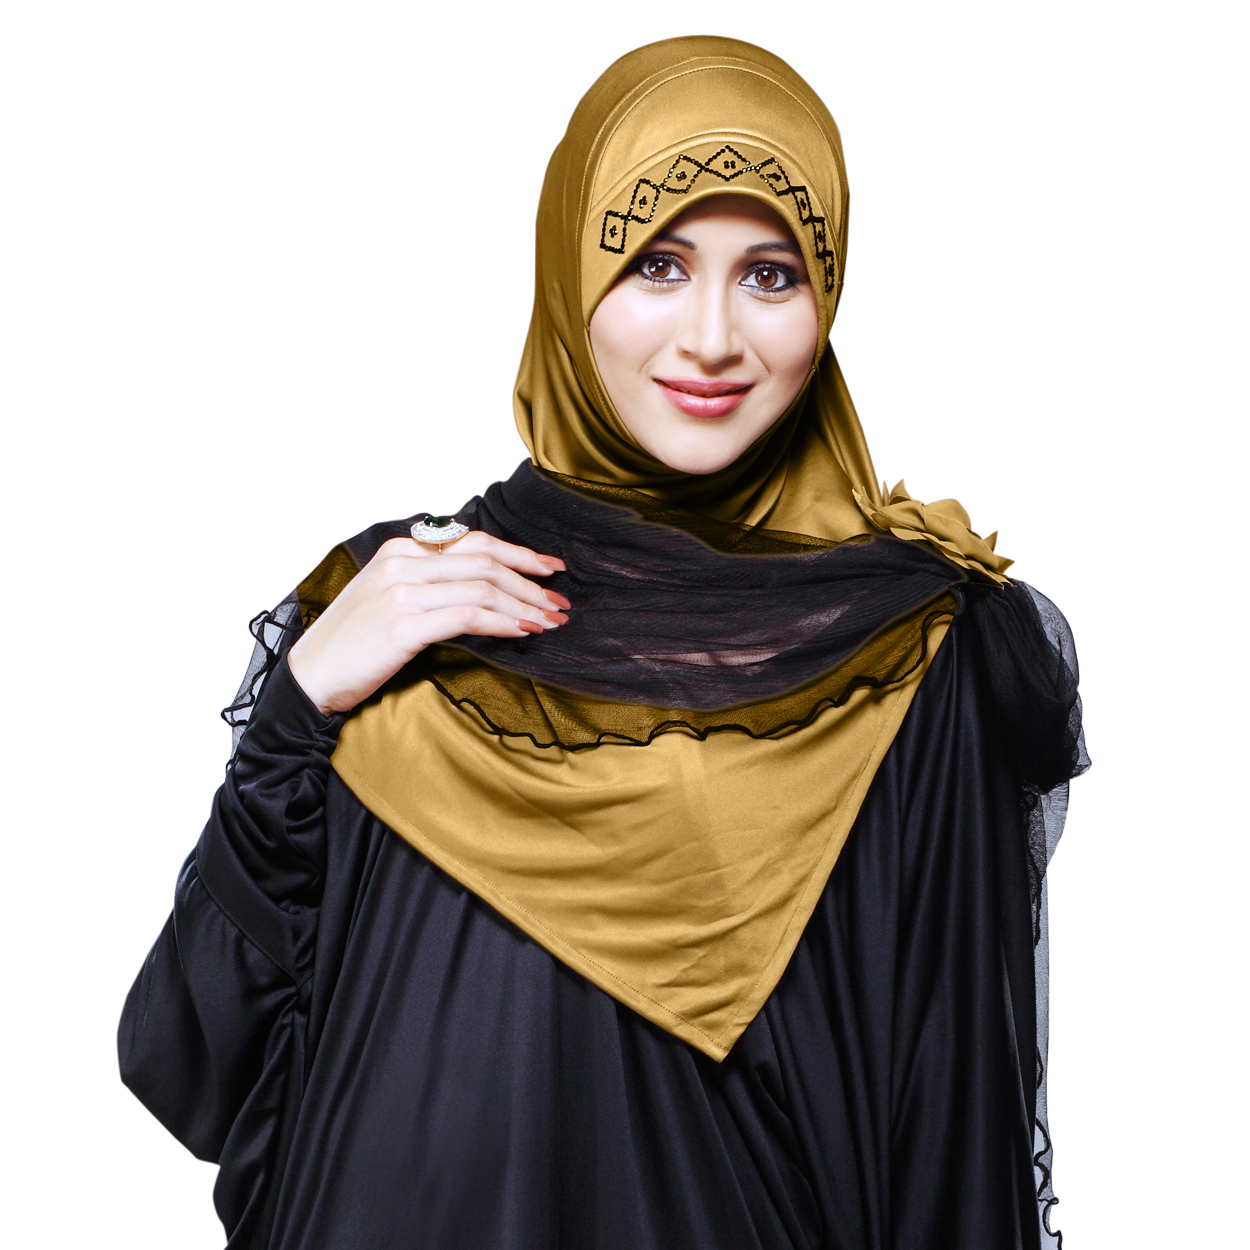 Ready to wear Instant hijab designed with rhine stone on cap additional black net included Zenora-gold-xl